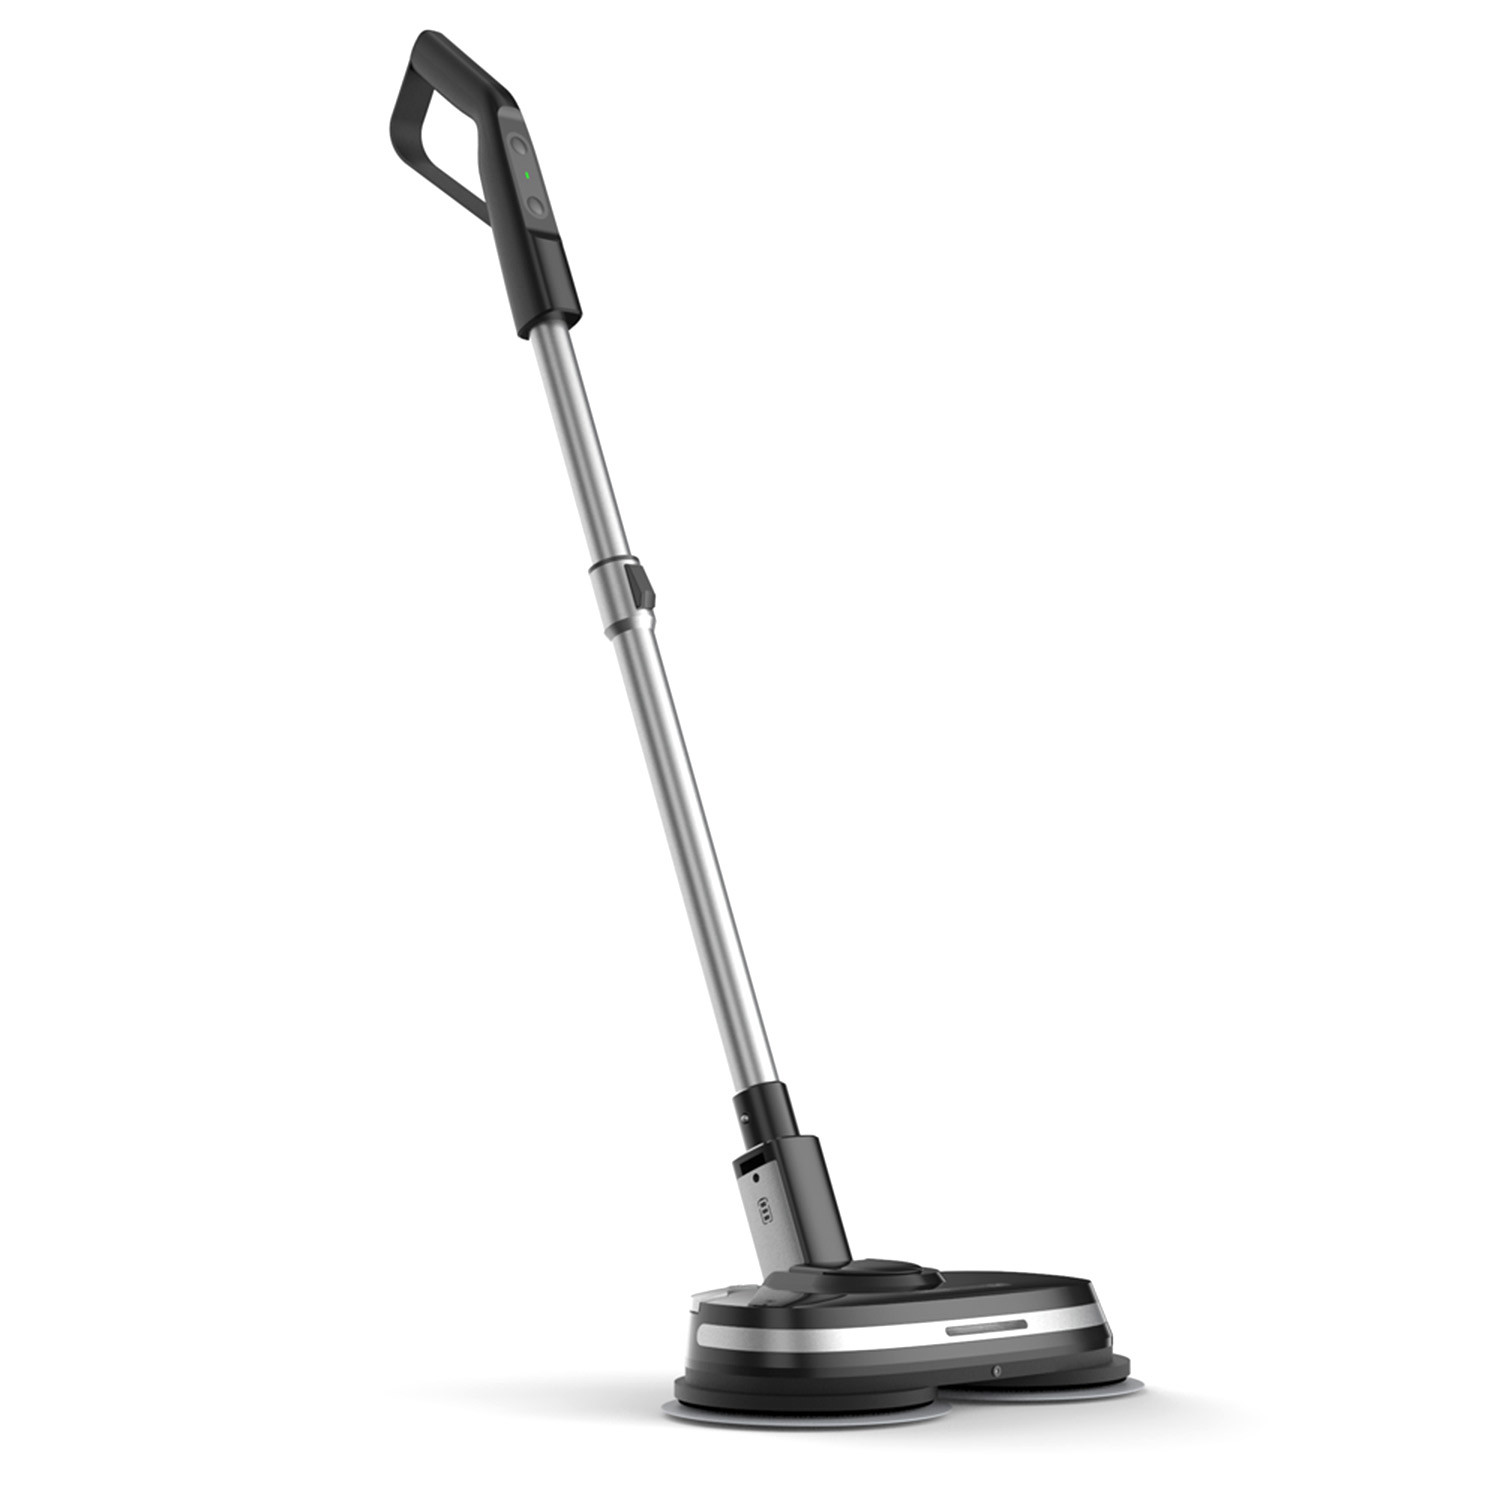 Powerglide Hard Floor Cleaner Jet Black Aircraft Home